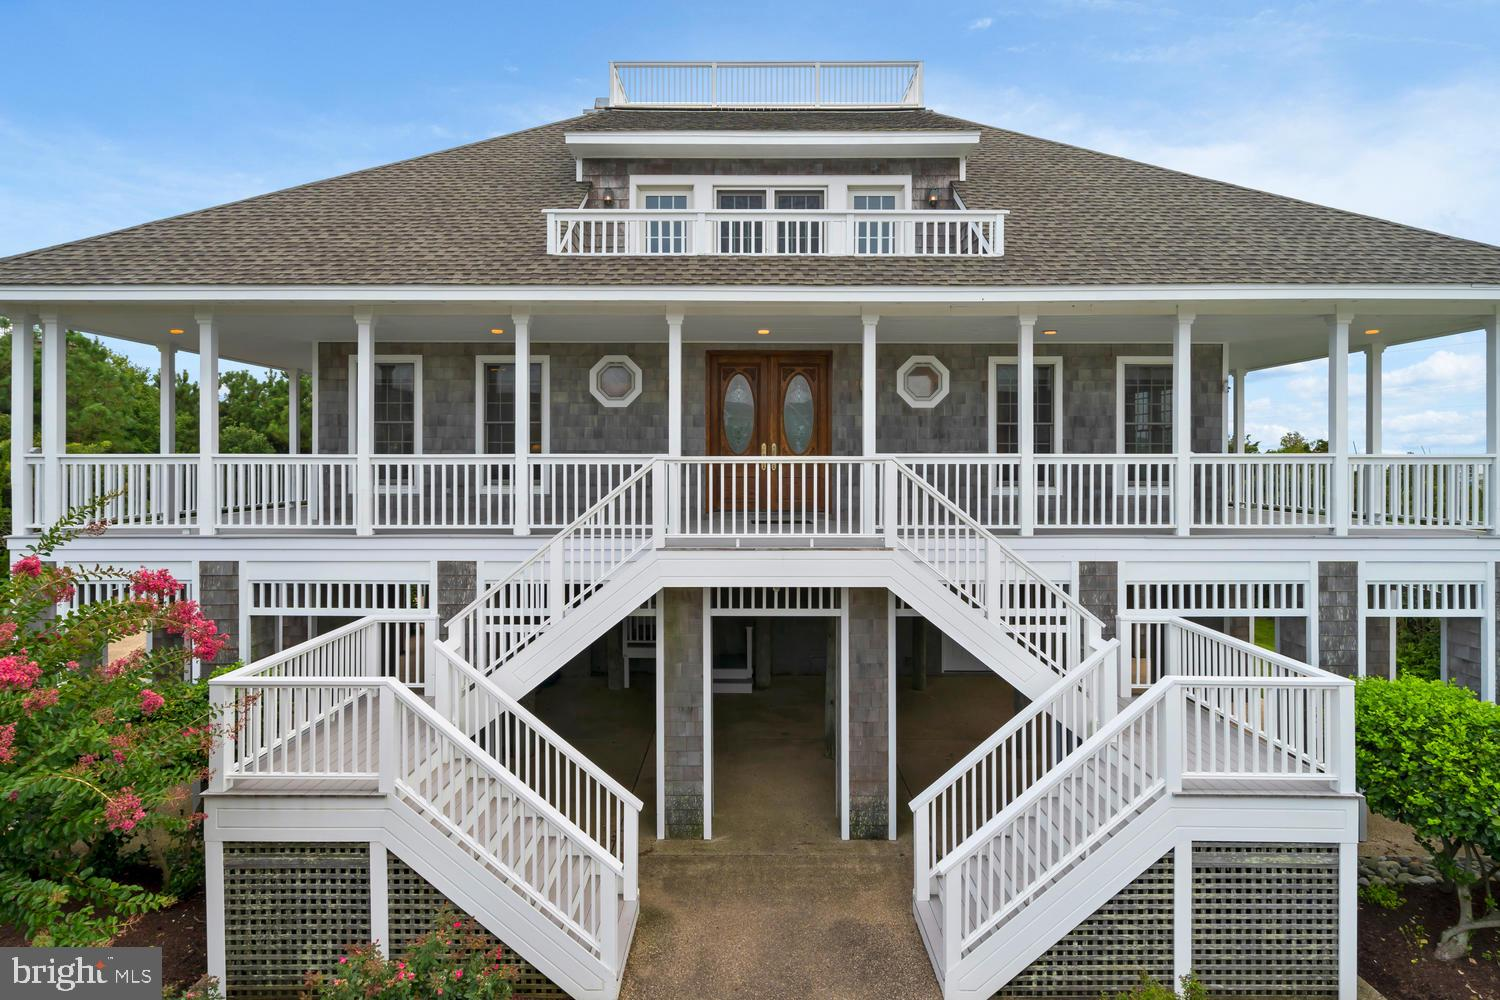 Majestic Coastal Home, Private Ocean Side Community and ROOM FOR A PRIVATE POOL!  Are you ready to effortlessly watch sunrises and sunsets over the Ocean and Bay? With nearly a 360-degree combined view of Rehoboth Bay, the Atlantic Ocean and State Park Preservation Area, 33 Hall Avenue is a unique opportunity with  4,000 +/- sq. ft. of space, boasts five bedrooms, five  baths, and is an architectural delight.   This is the kind of home that you never want to leave, yet is very close to all coastal area points of interest. Seize immediate water views from the grand second level entry:  huge great room with masonry fireplace, inviting family room, and a chef's kitchen that flows effortlessly into formal and casual dining areas.  The kitchen is all gourmet: butler/breezeway with side delivery/service entrance, wine cooler, sub-zero refrigerator, gas cooktop, double ovens, and granite counter tops.   Lounge on the expansive wraparound decking, relax on the back screened terrace with water views all day long; or stroll up to the roof top observation deck for total unsurpassed views up and down the coast. Easily take a short walk to the private beach via private seaside walkway. This home is traditionally elegant with graceful oak staircases, oak hardwood floors, solid oak doors, exquisitely tiled showers and baths (including outdoor shower), and atrium center with cupula style stained glass ceiling design as your focal point.  Perfect for broad scale entertaining! Round out the residence with almost   acre cul-de-sac lot/location shrouded by beautiful landscaping, and idyllic seclusion as you hear all that nature has to offer: waves, shore birds, breezes, and more. Attached 2 car garage, storage galore, separate laundry room, and bedrooms with private balconies! The Chancellery is a private ocean front community consisting of just 16 distinctive residences. All homes sprawl across large lots and there is private beach access via secluded boardwalk.